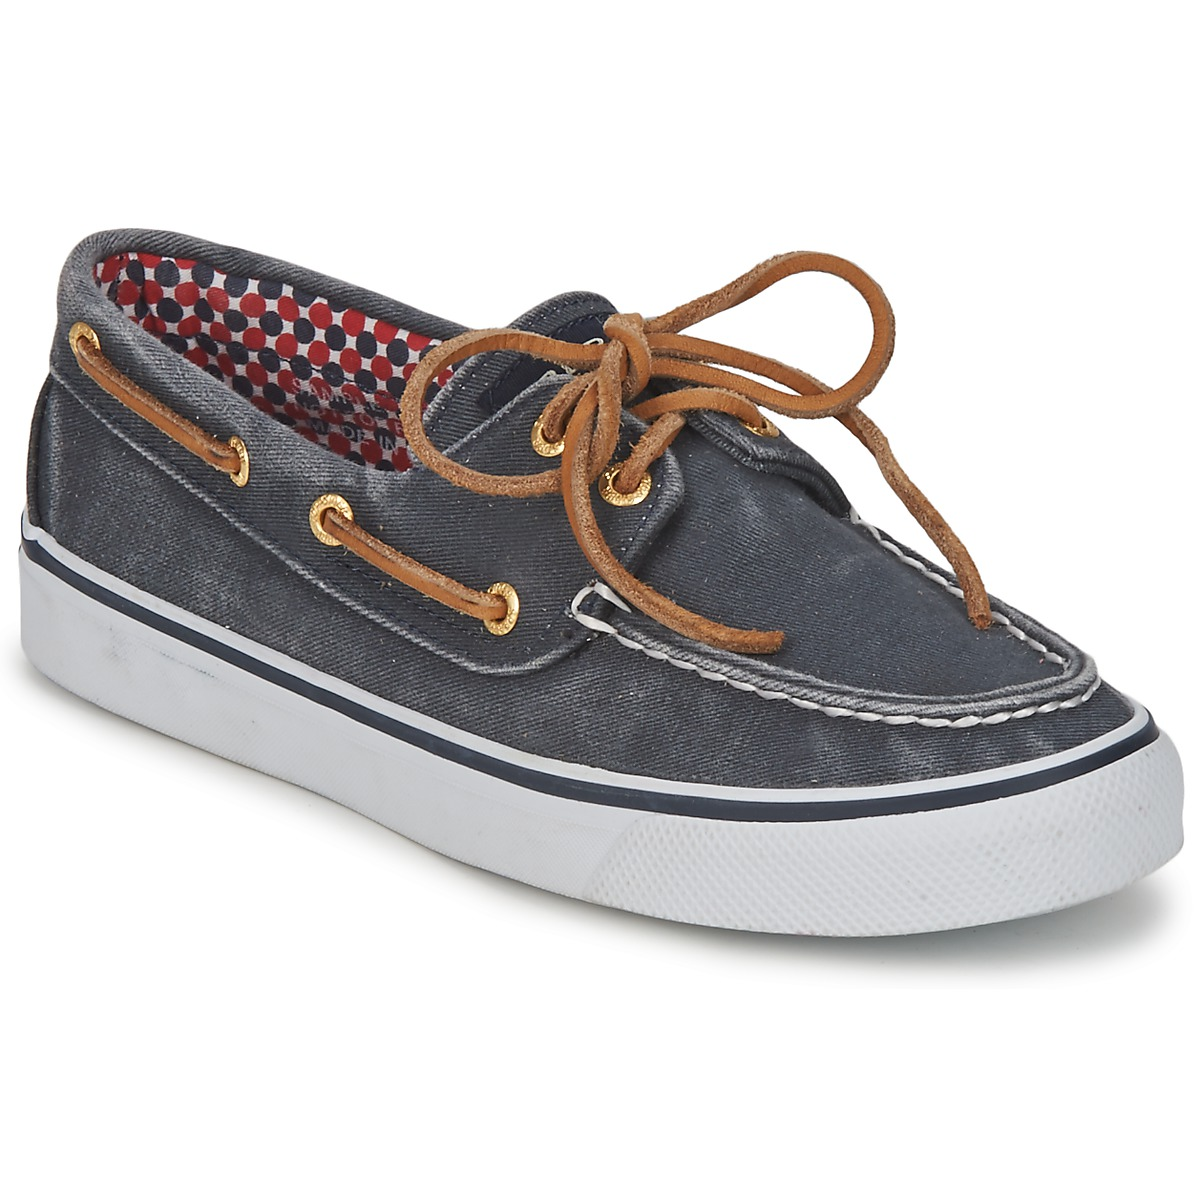 Sperry Top-Sider BAHAMA Marine